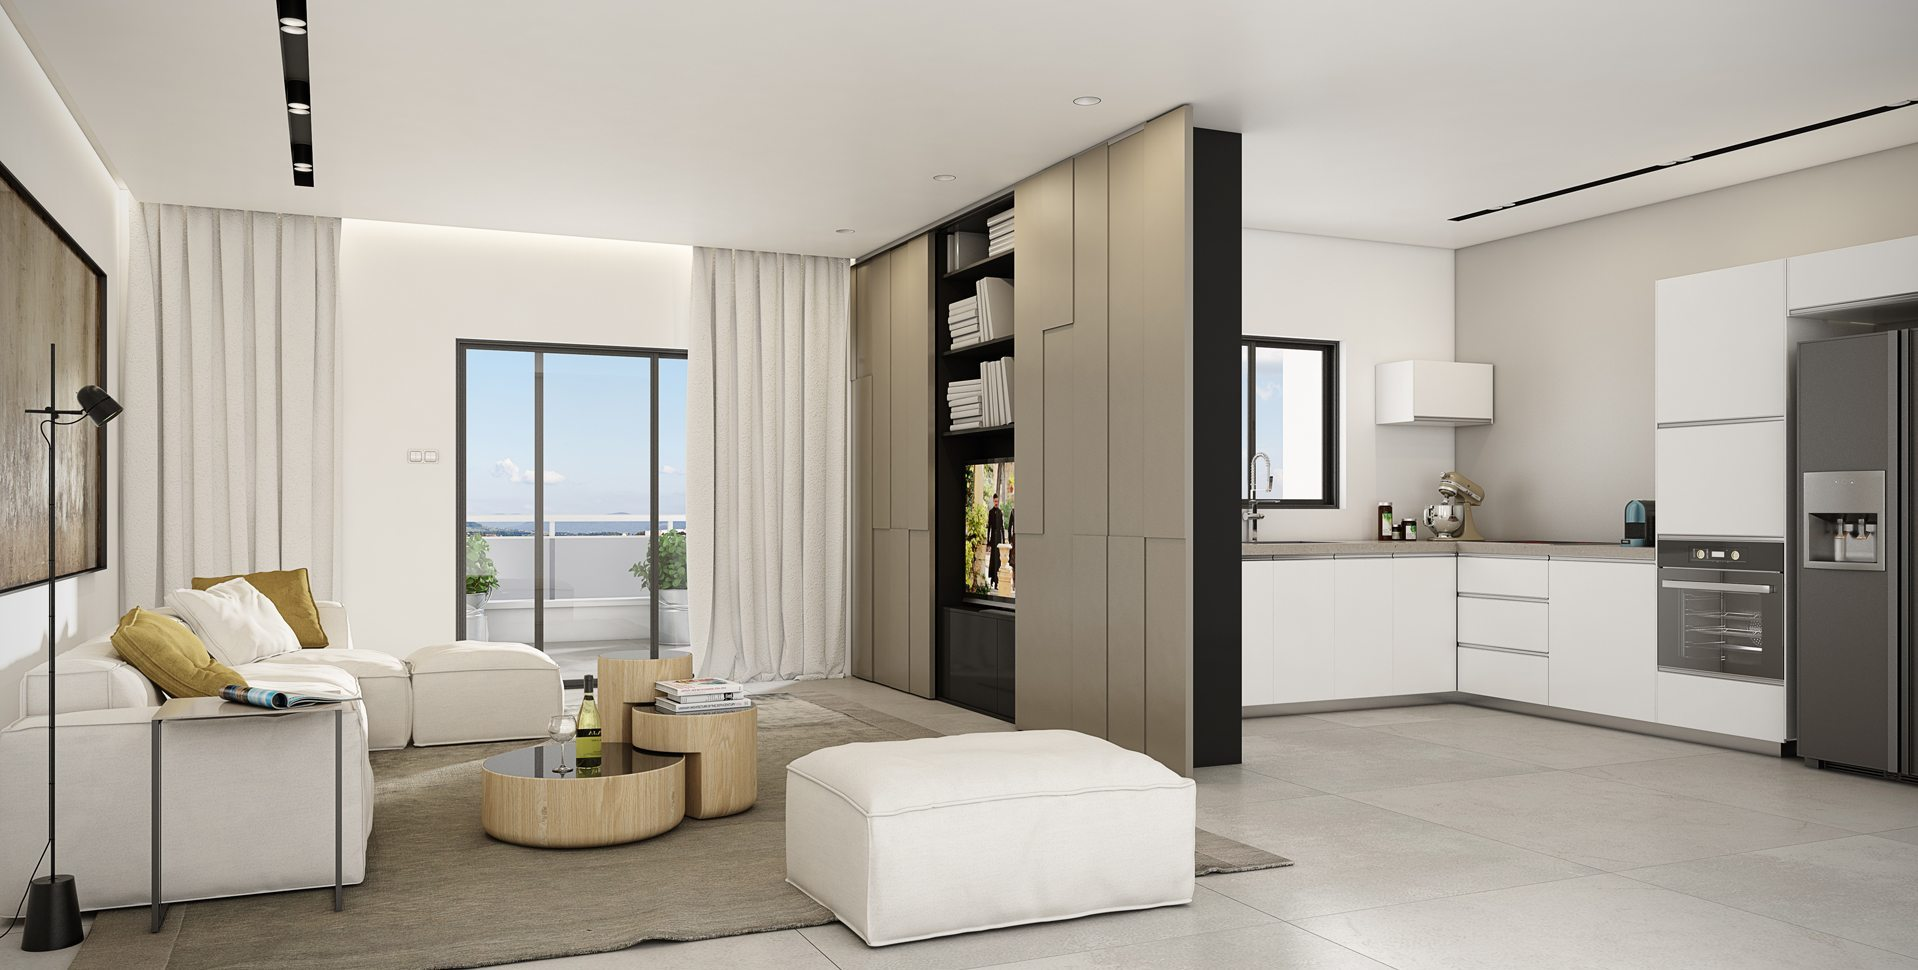 Architectural Visualization: Residential Project, Beer-Sheva, Living room and kitchen interior design